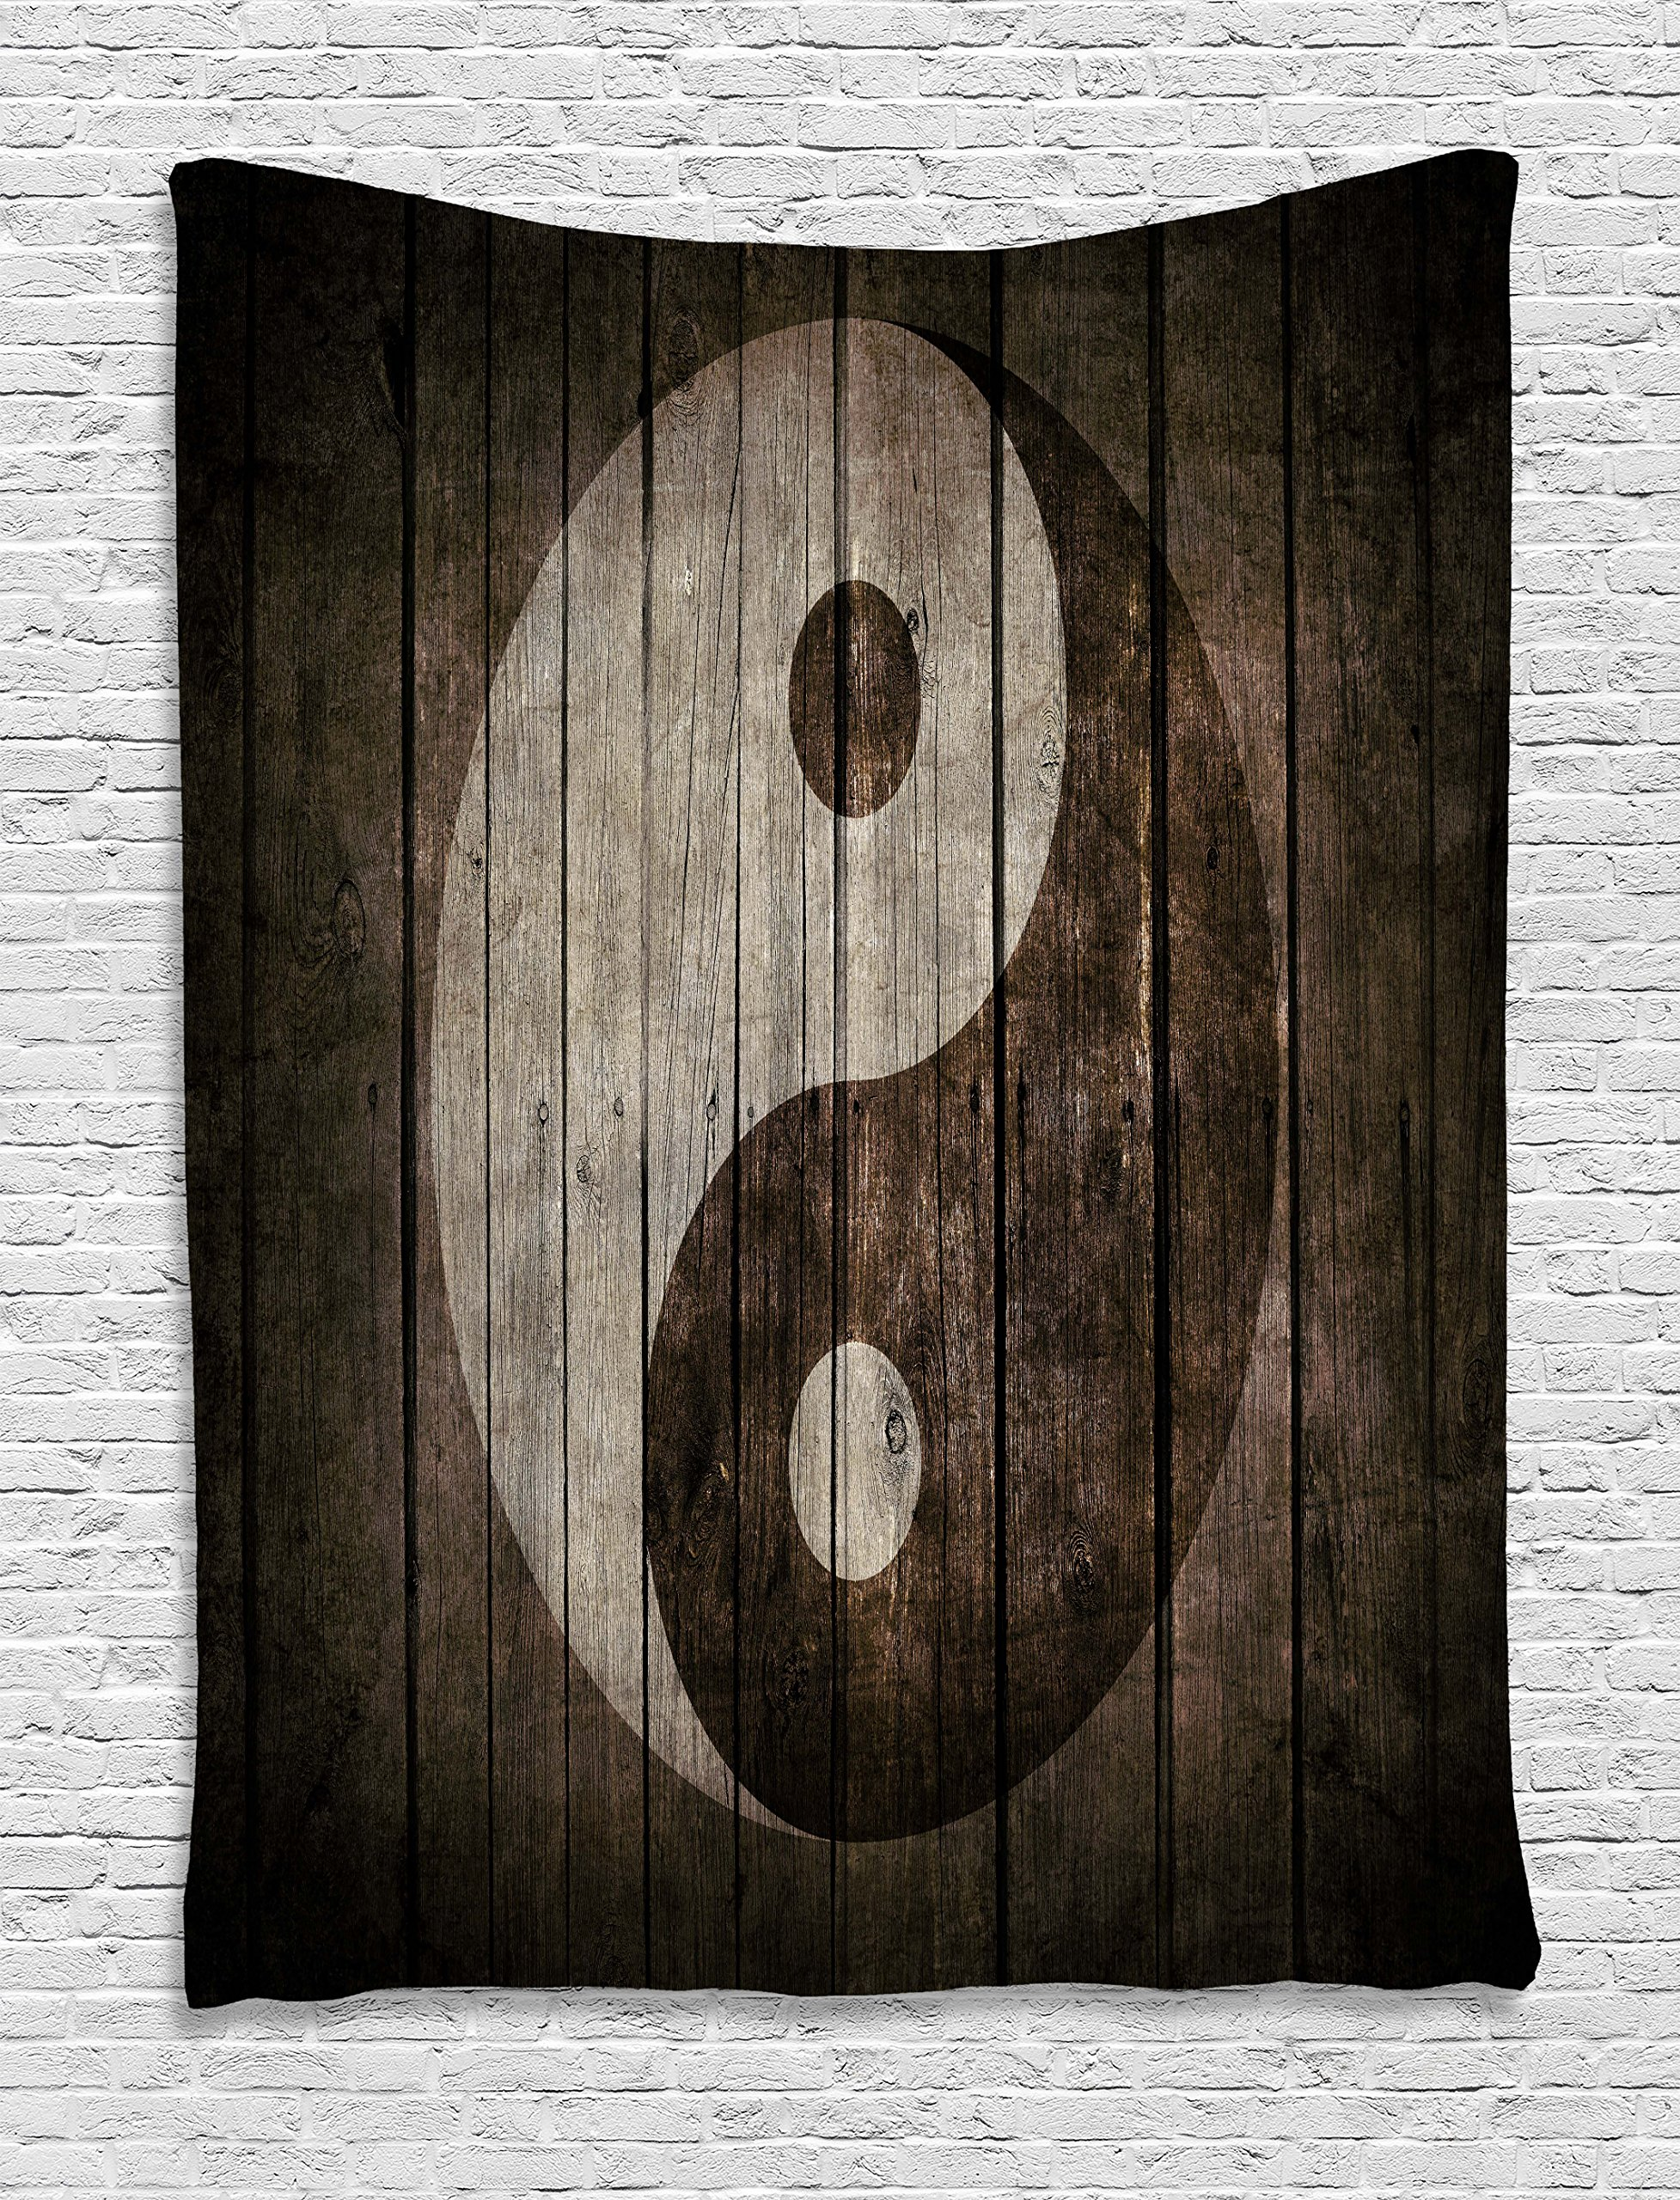 Ambesonne Ying Yang Decor Collection, Rustic Wood with Ying Yang Sign Art Grunge Design Zen Peace Balance Yoga Nature Theme, Bedroom Living Room Dorm Wall Hanging Tapestry, 40 X 60 Inches, Beige Brown